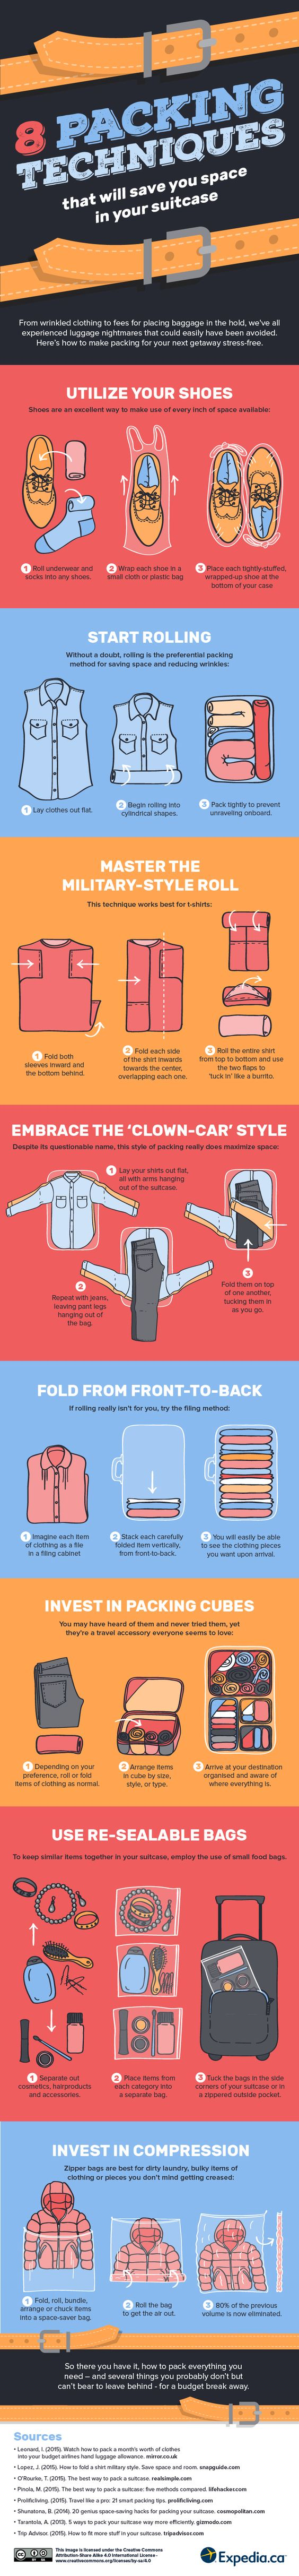 Infographic: 8 packing techniques that will save you space in your suitcase - Matador Network